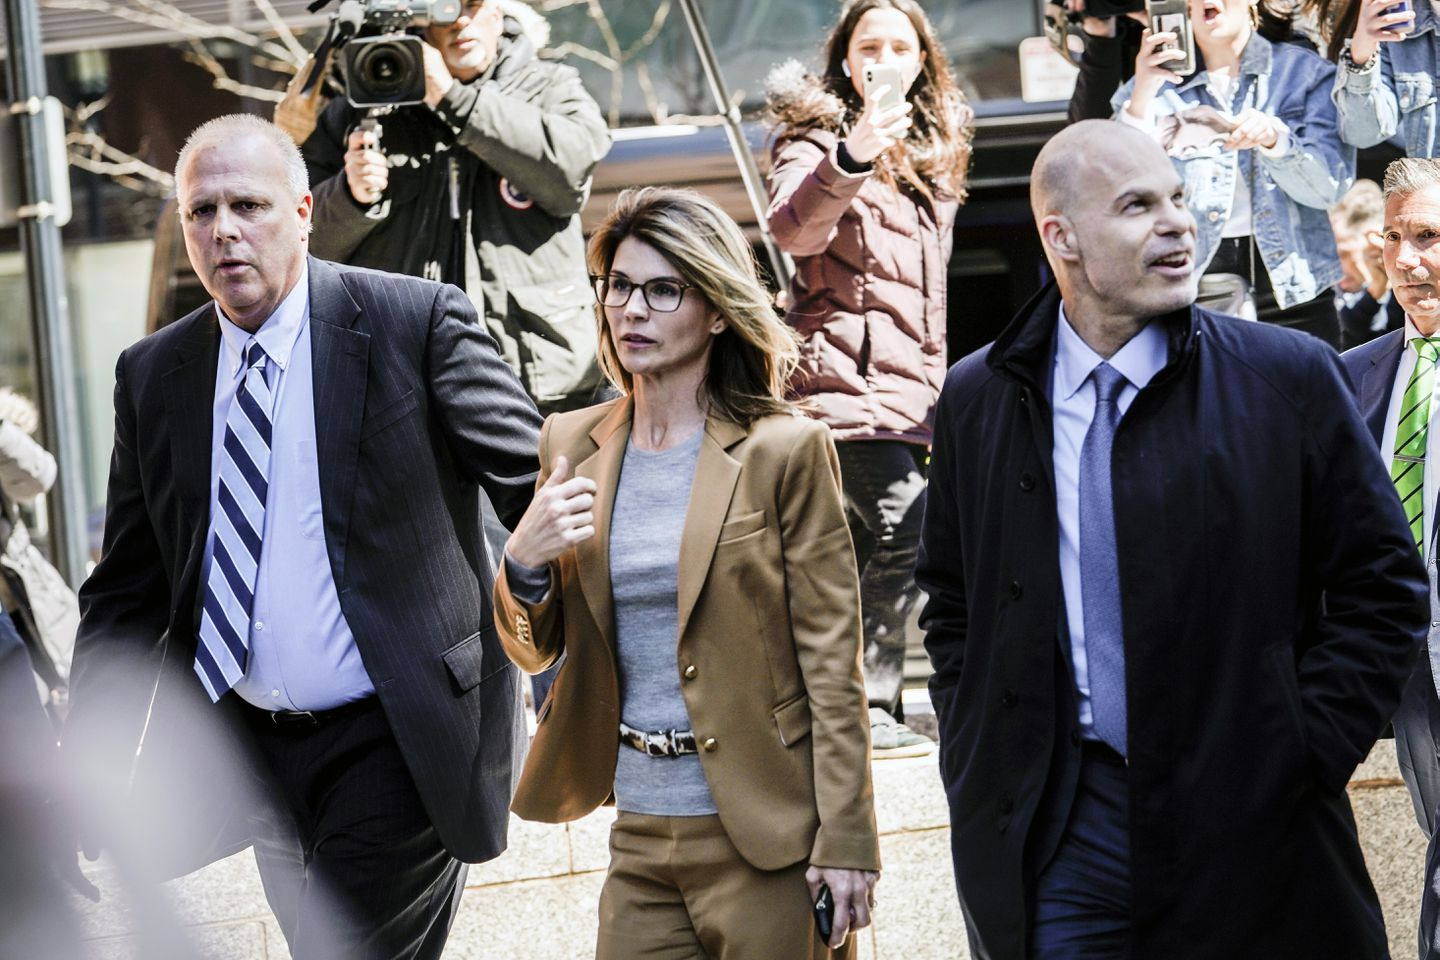 """The scandal involving """"Full House"""" actress Lori Loughlin (a.k.a. """"Aunt Becky"""") and other wealthy parents highlights the way sports have distorted college admissions."""